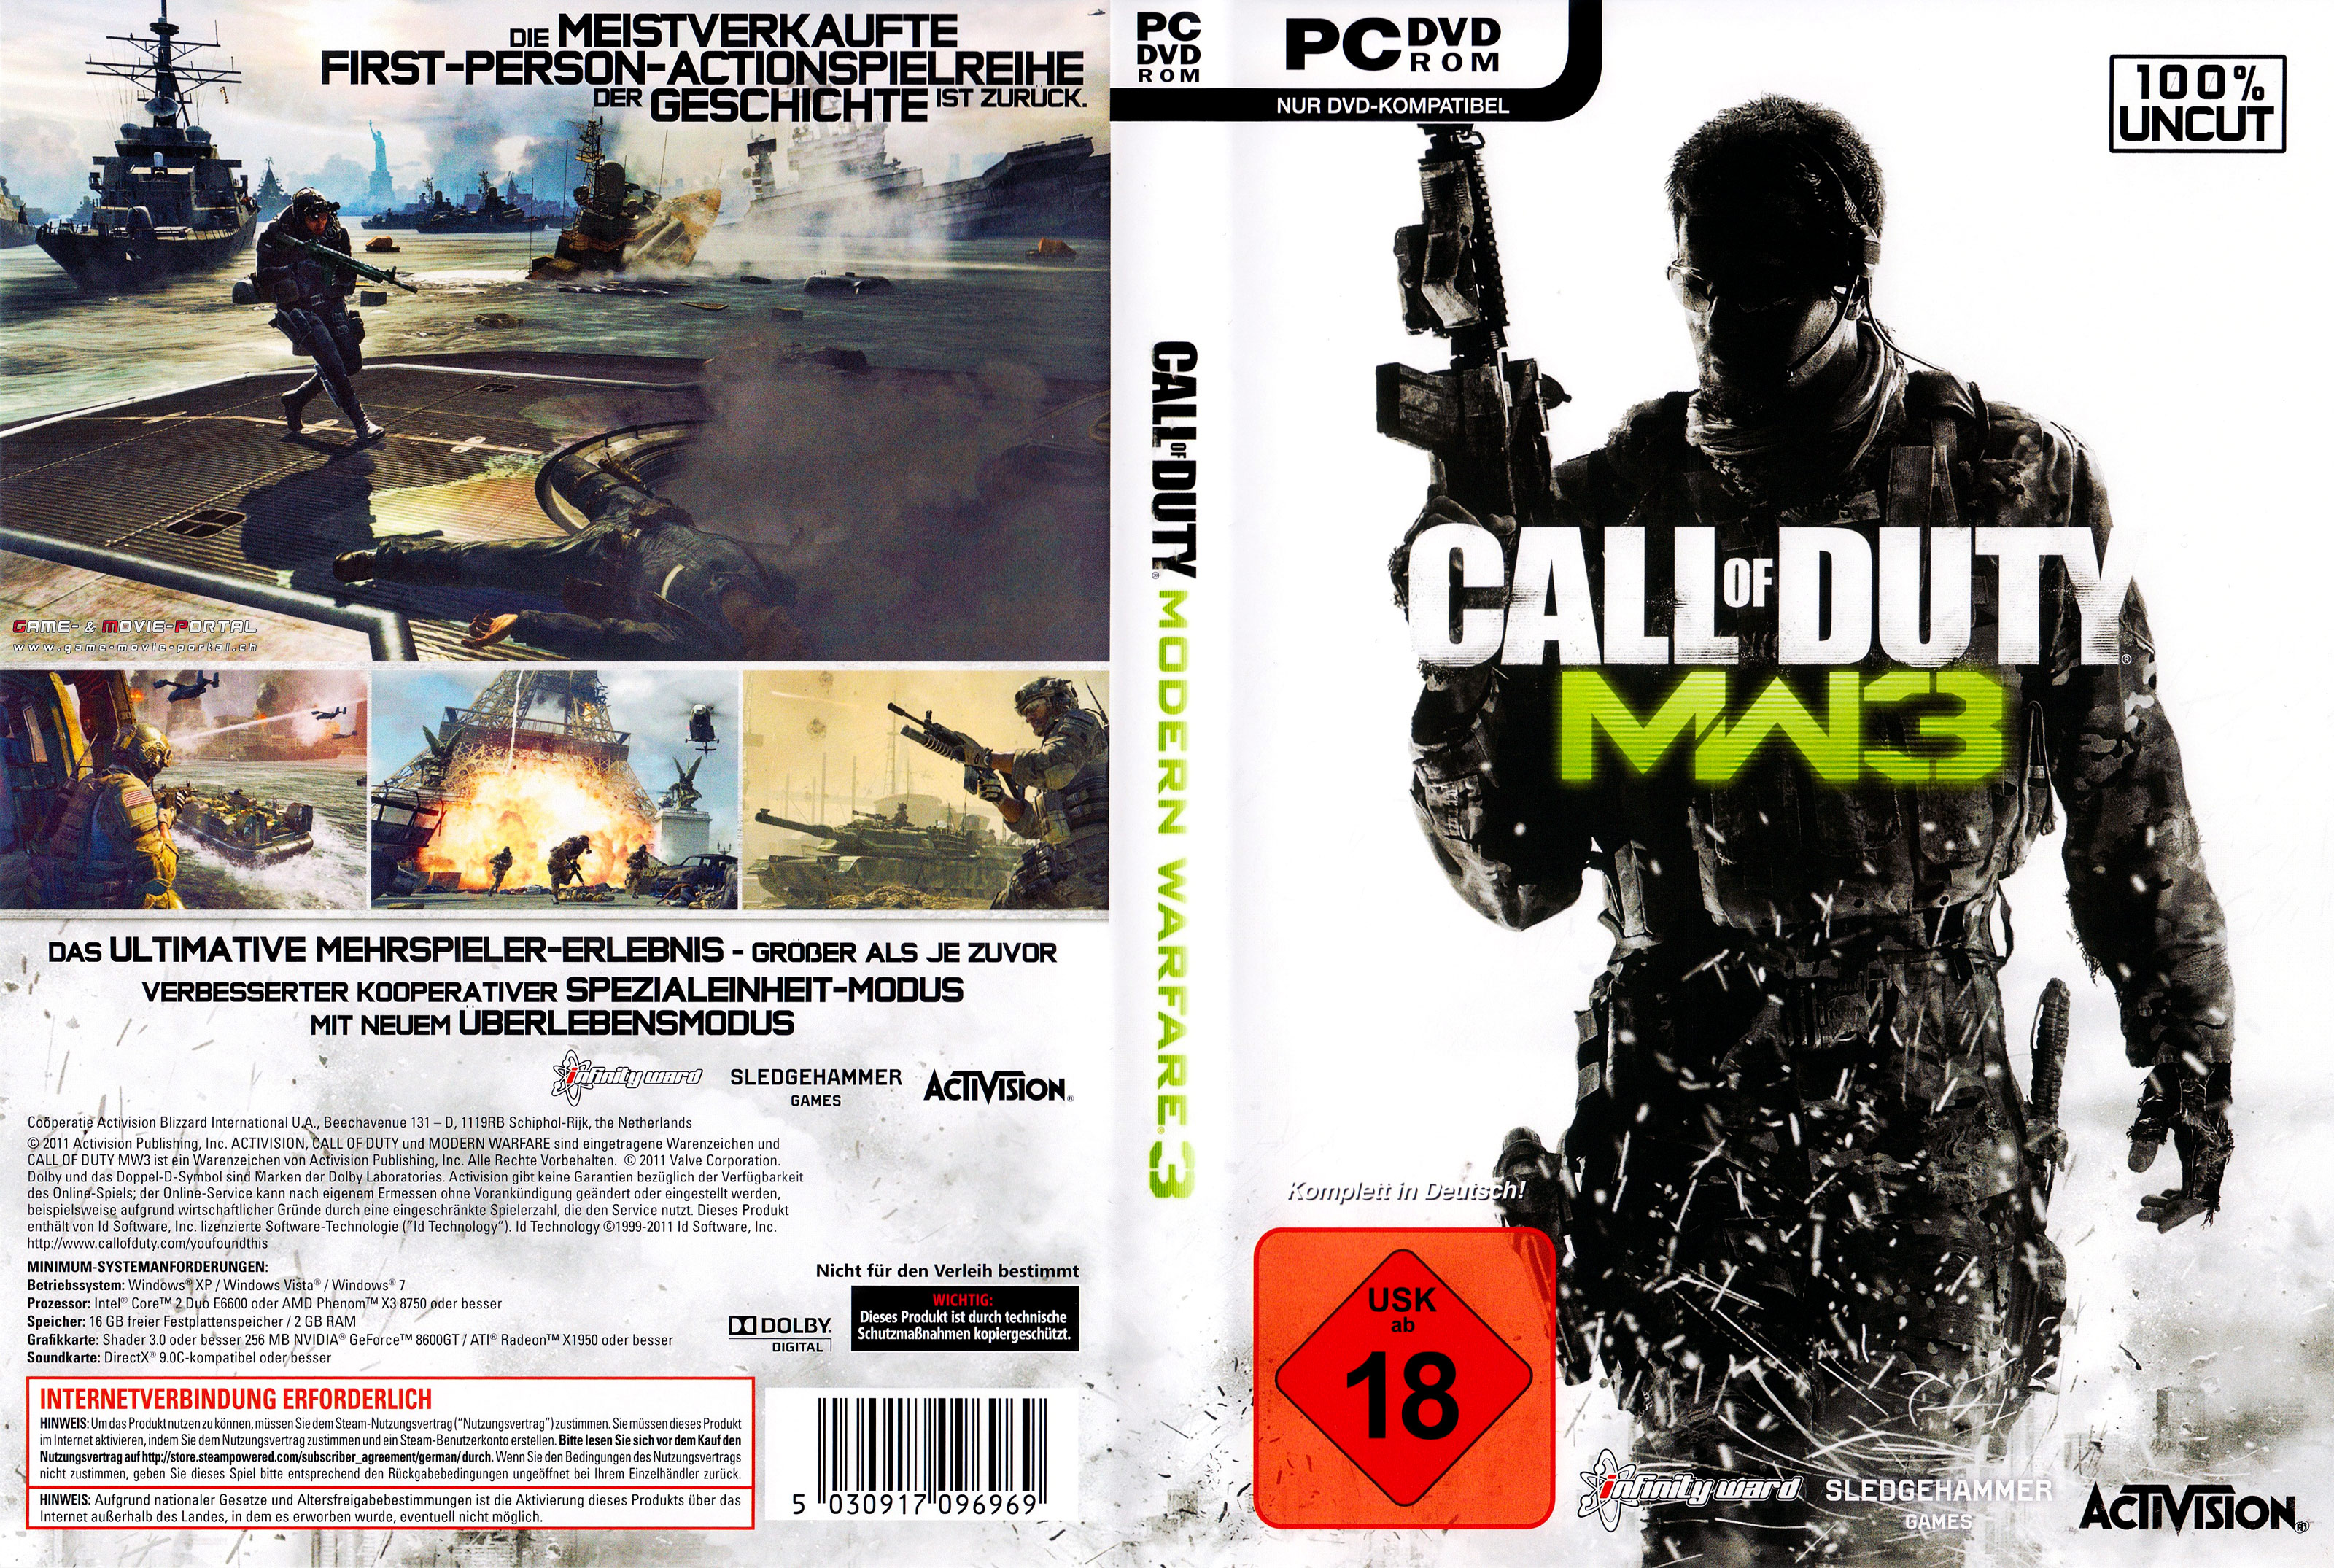 Call Of Duty Modern Warfare 3 Pc Covers Cover Century Over 500 000 Album Art Covers For Free